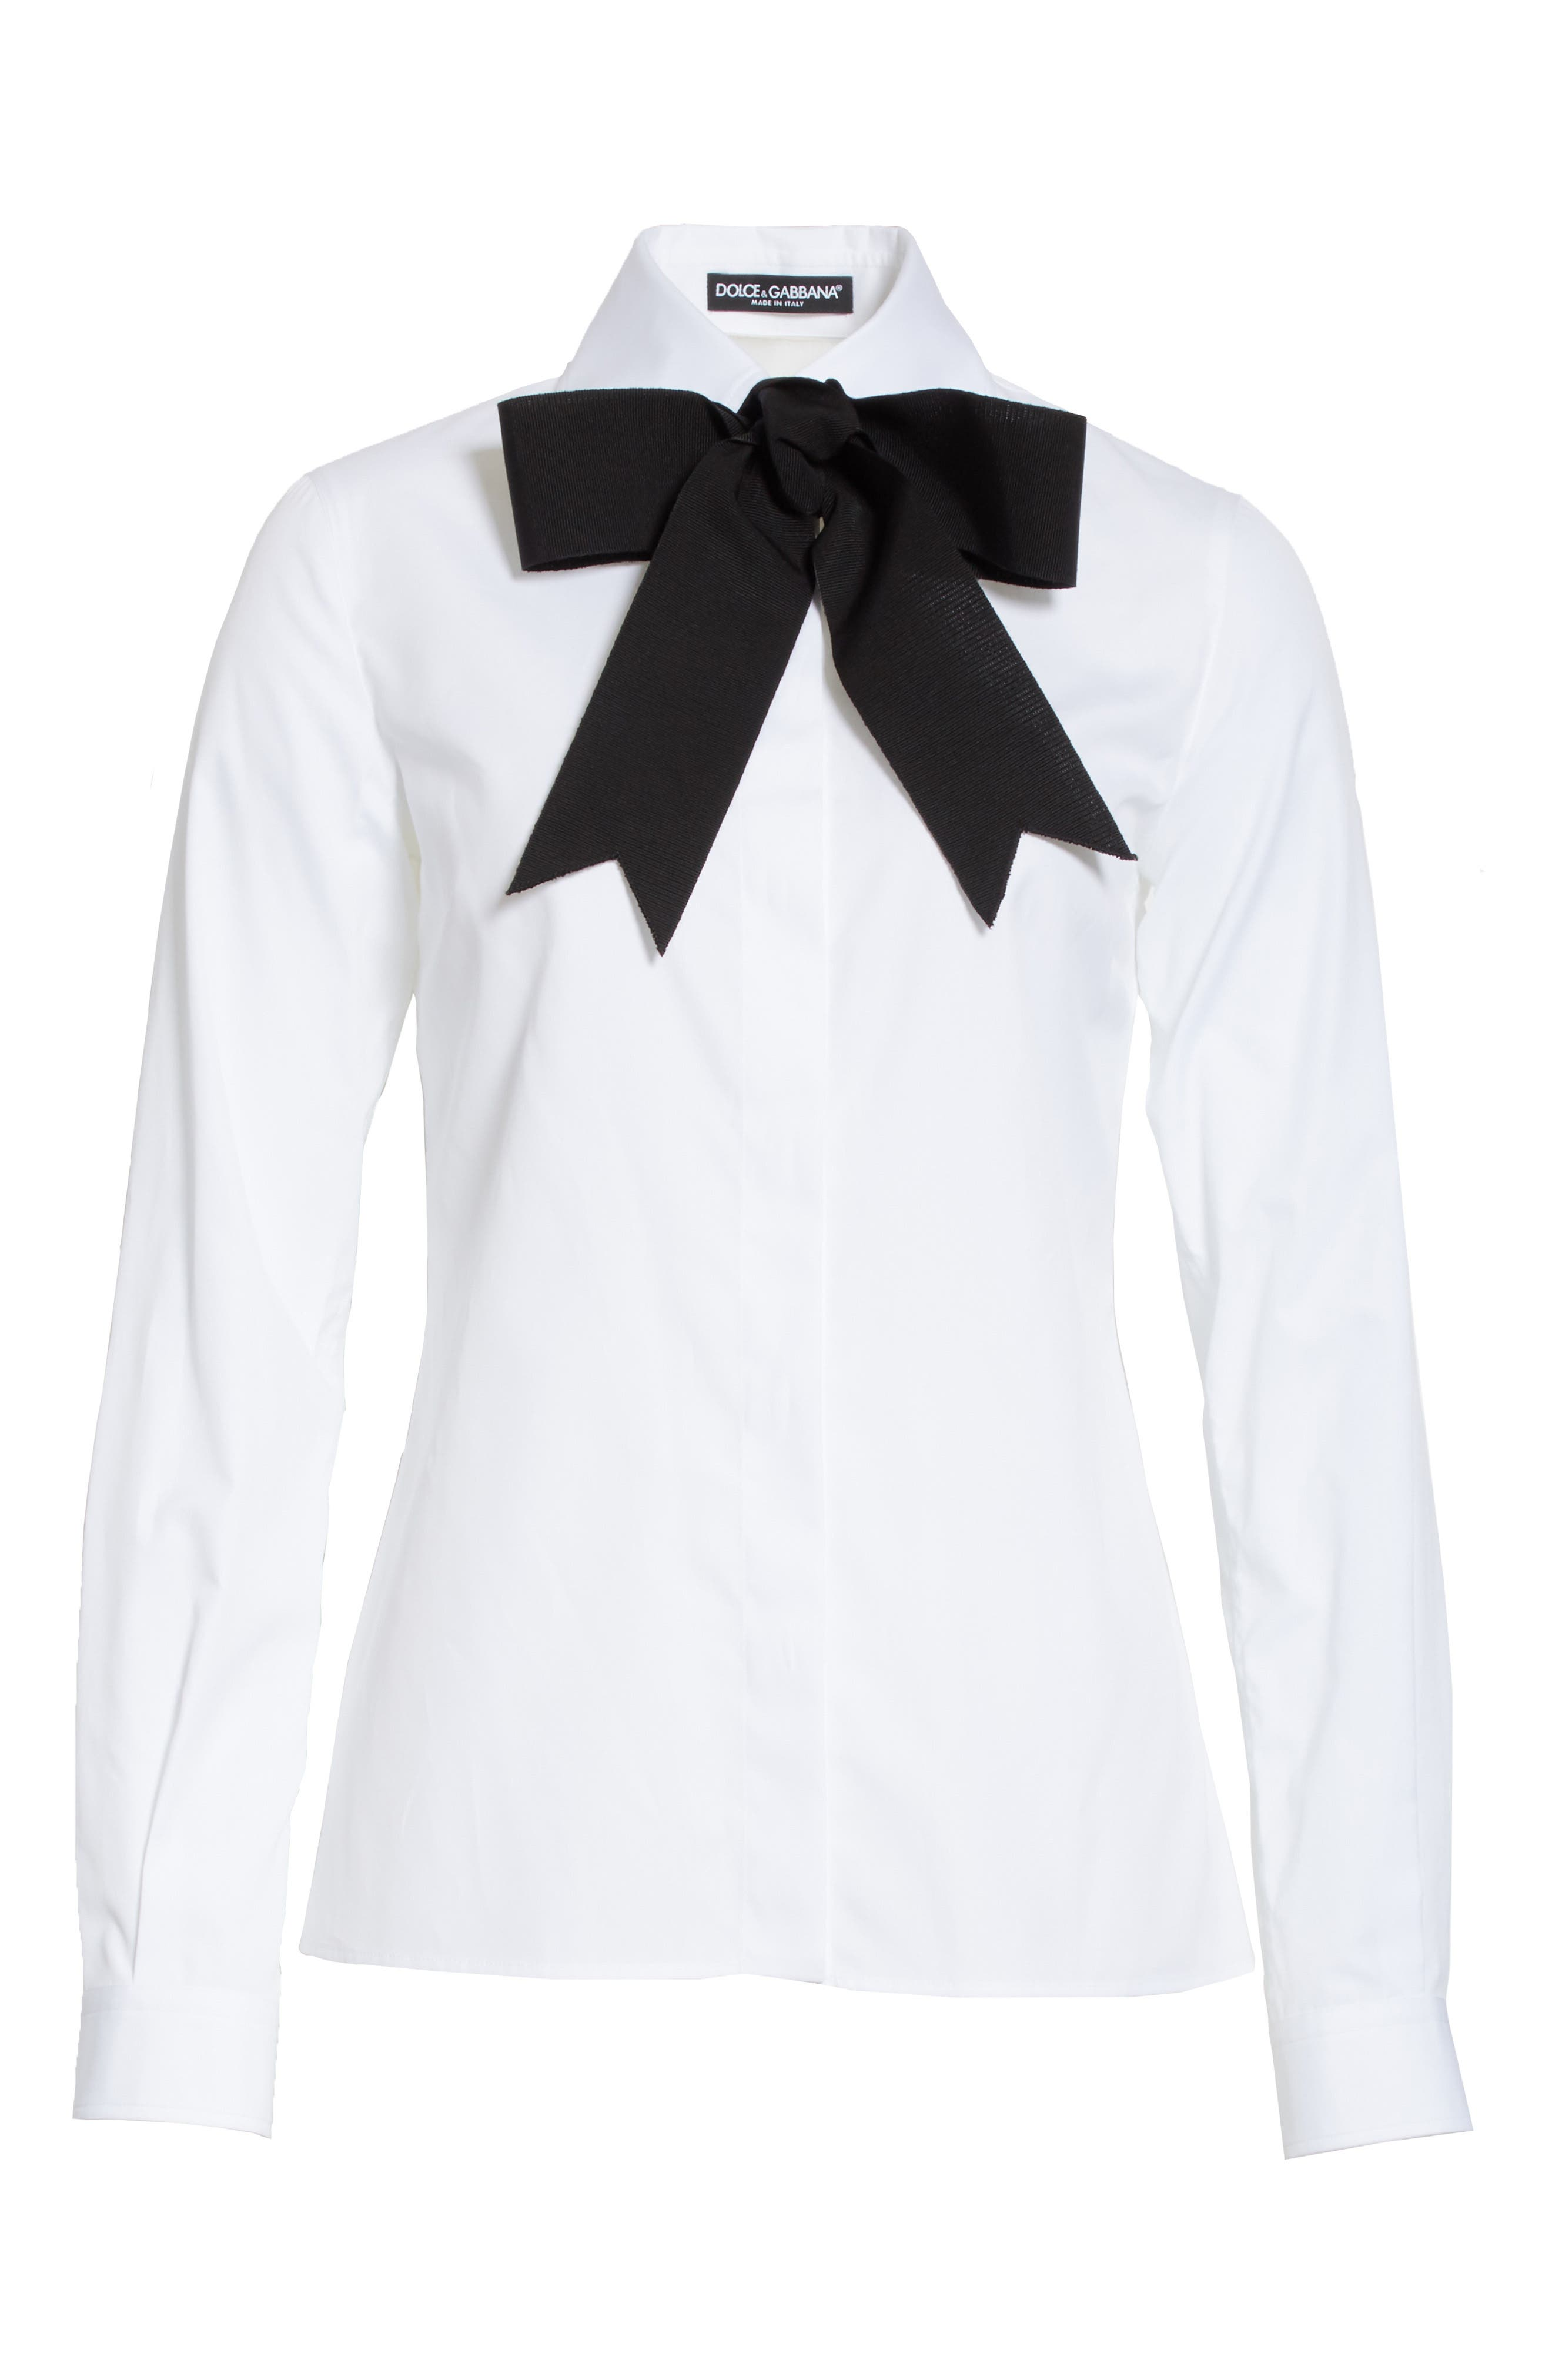 Cotton Poplin Blouse with Bow,                             Alternate thumbnail 6, color,                             101